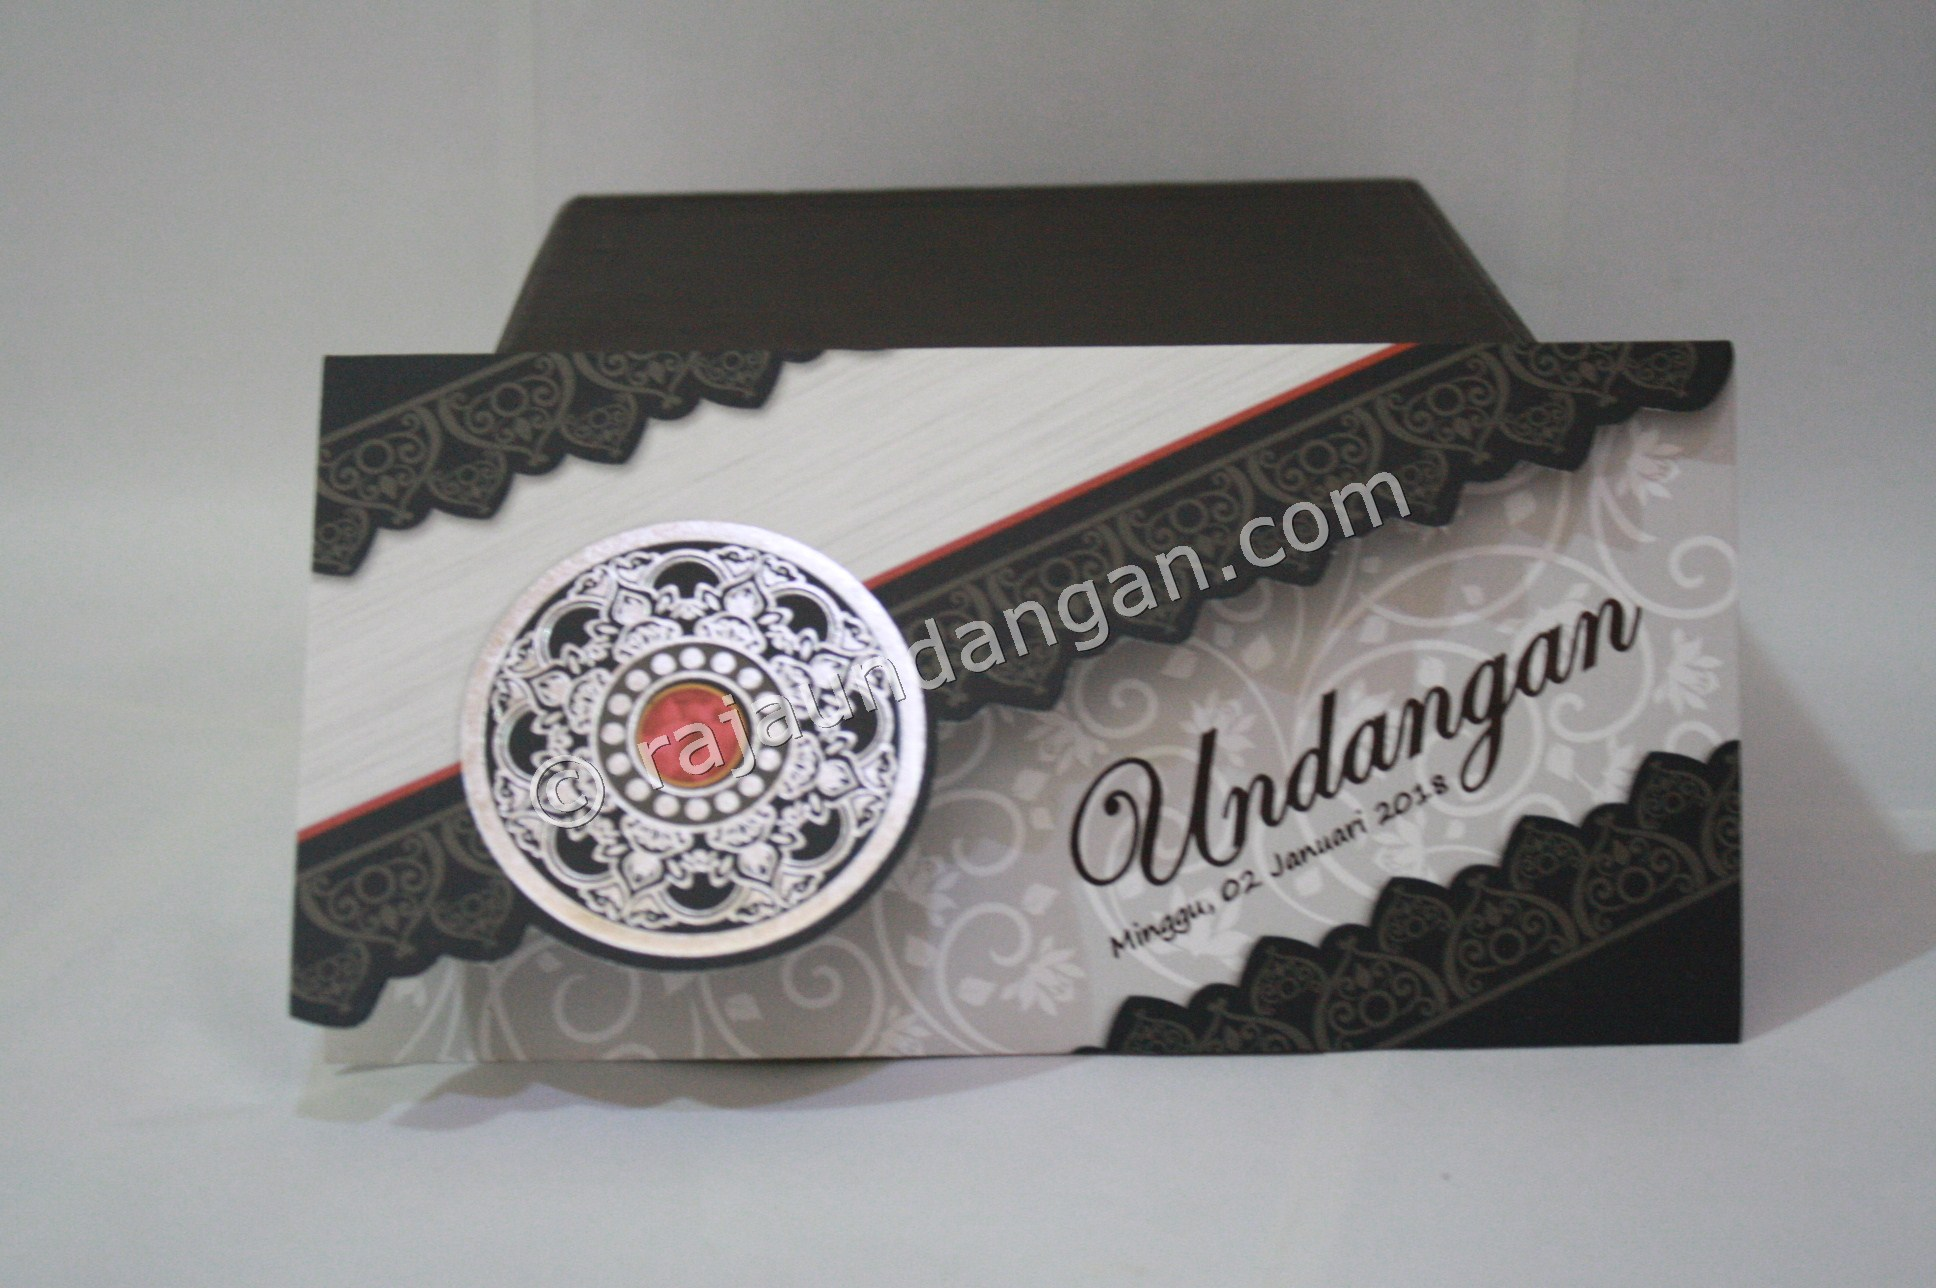 Undangan Pernikahan Softcover Gina dan Rio - Percetakan Wedding Invitations Unik dan Simple di Dukuh Sutorejo